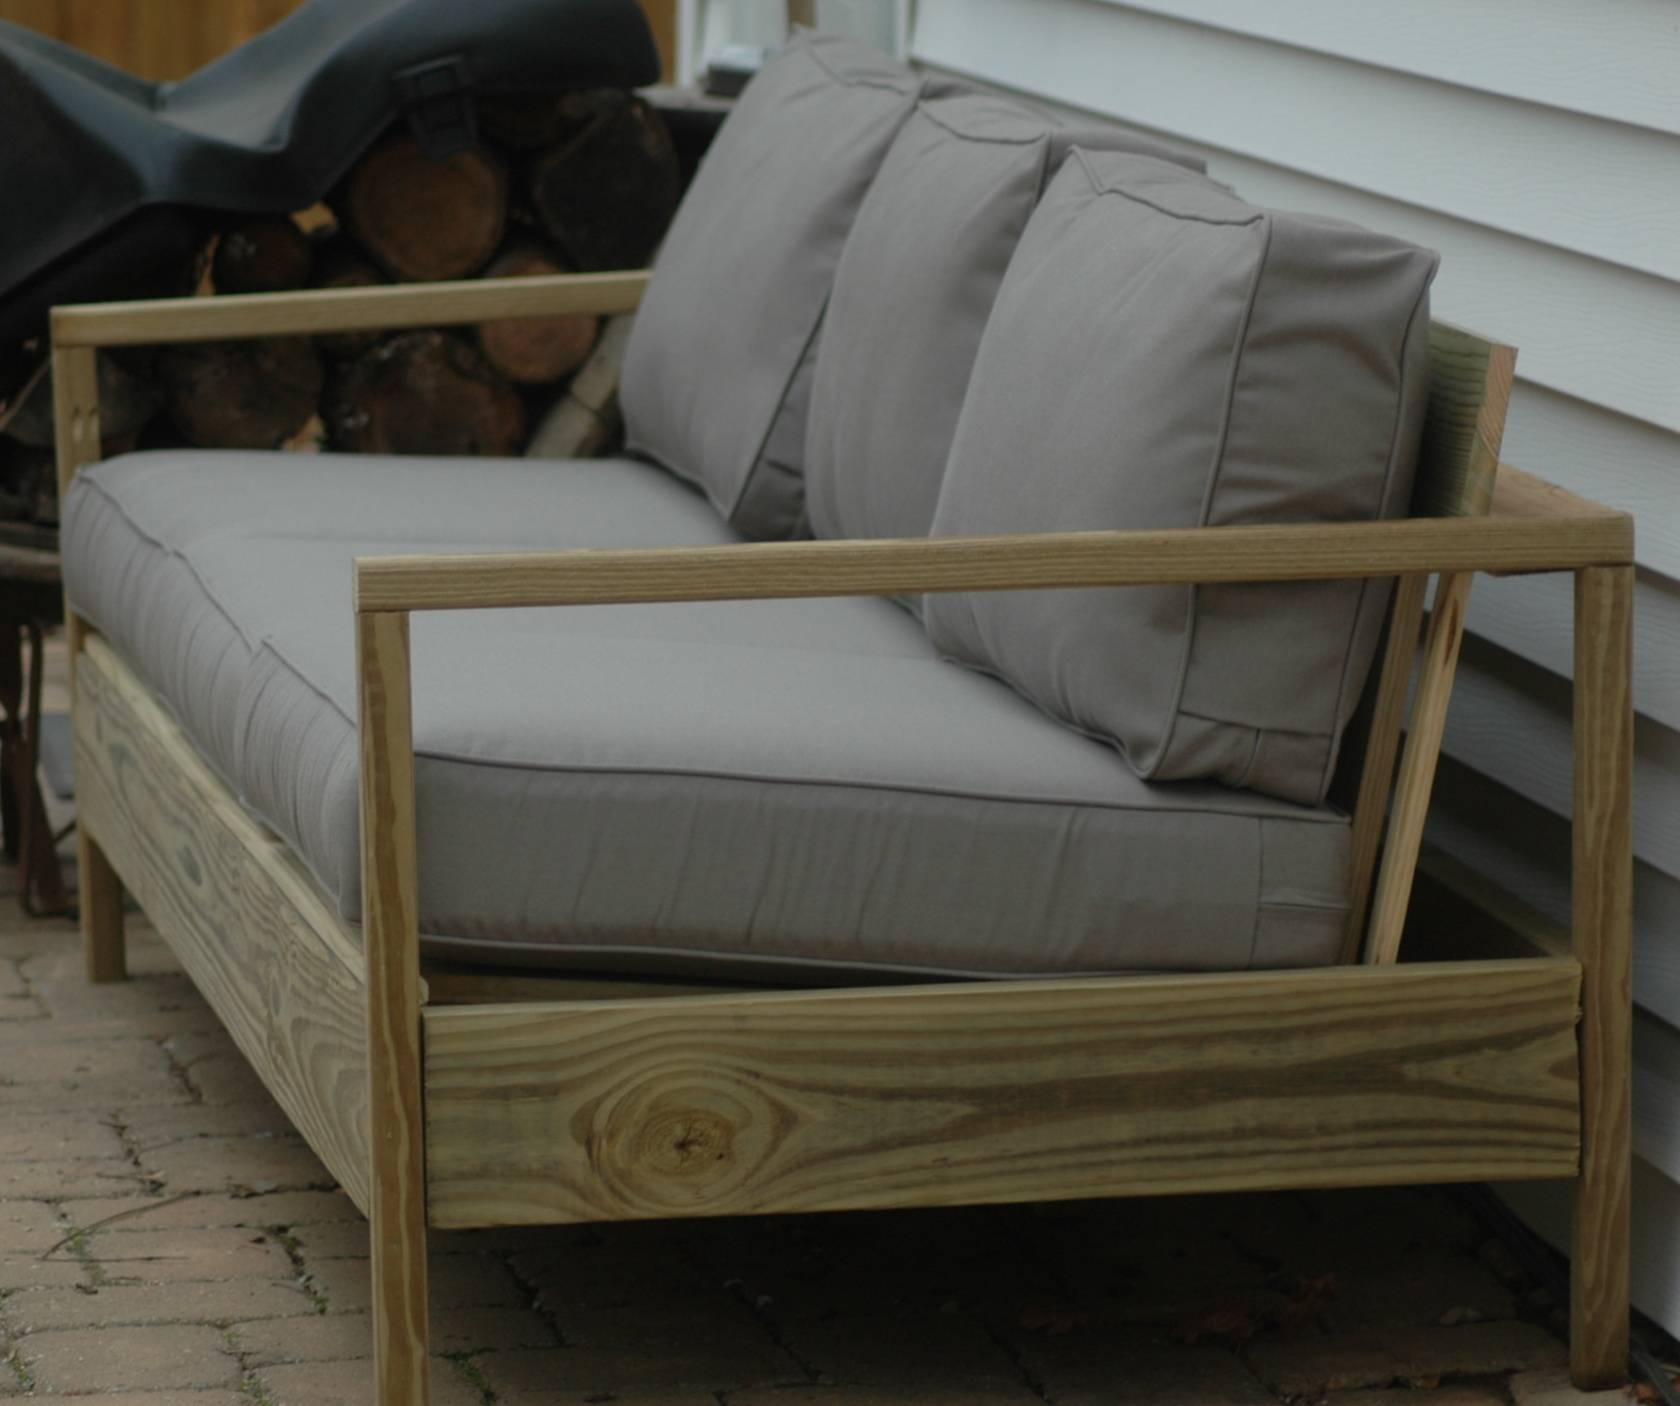 Ana White | 84' Patio Sofa - Diy Projects within Building a Sectional Sofa (Image 1 of 30)